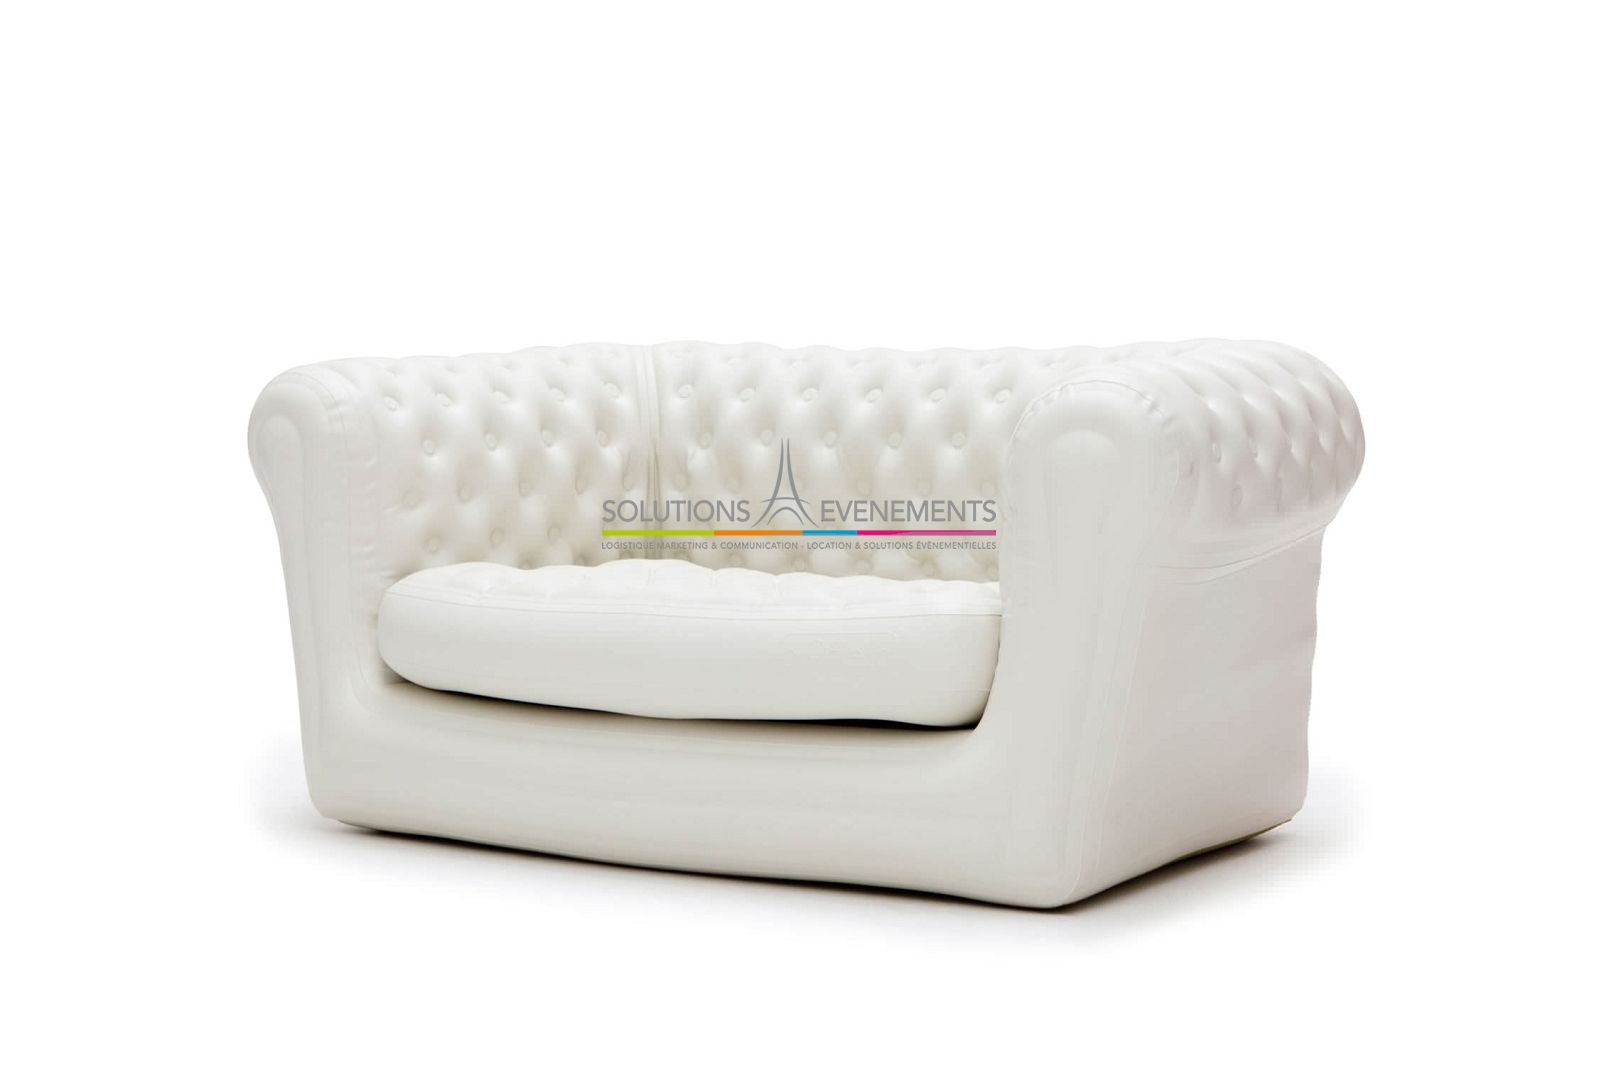 Location de canape chesterfield gonflable blanc - Canape gonflable chesterfield ...